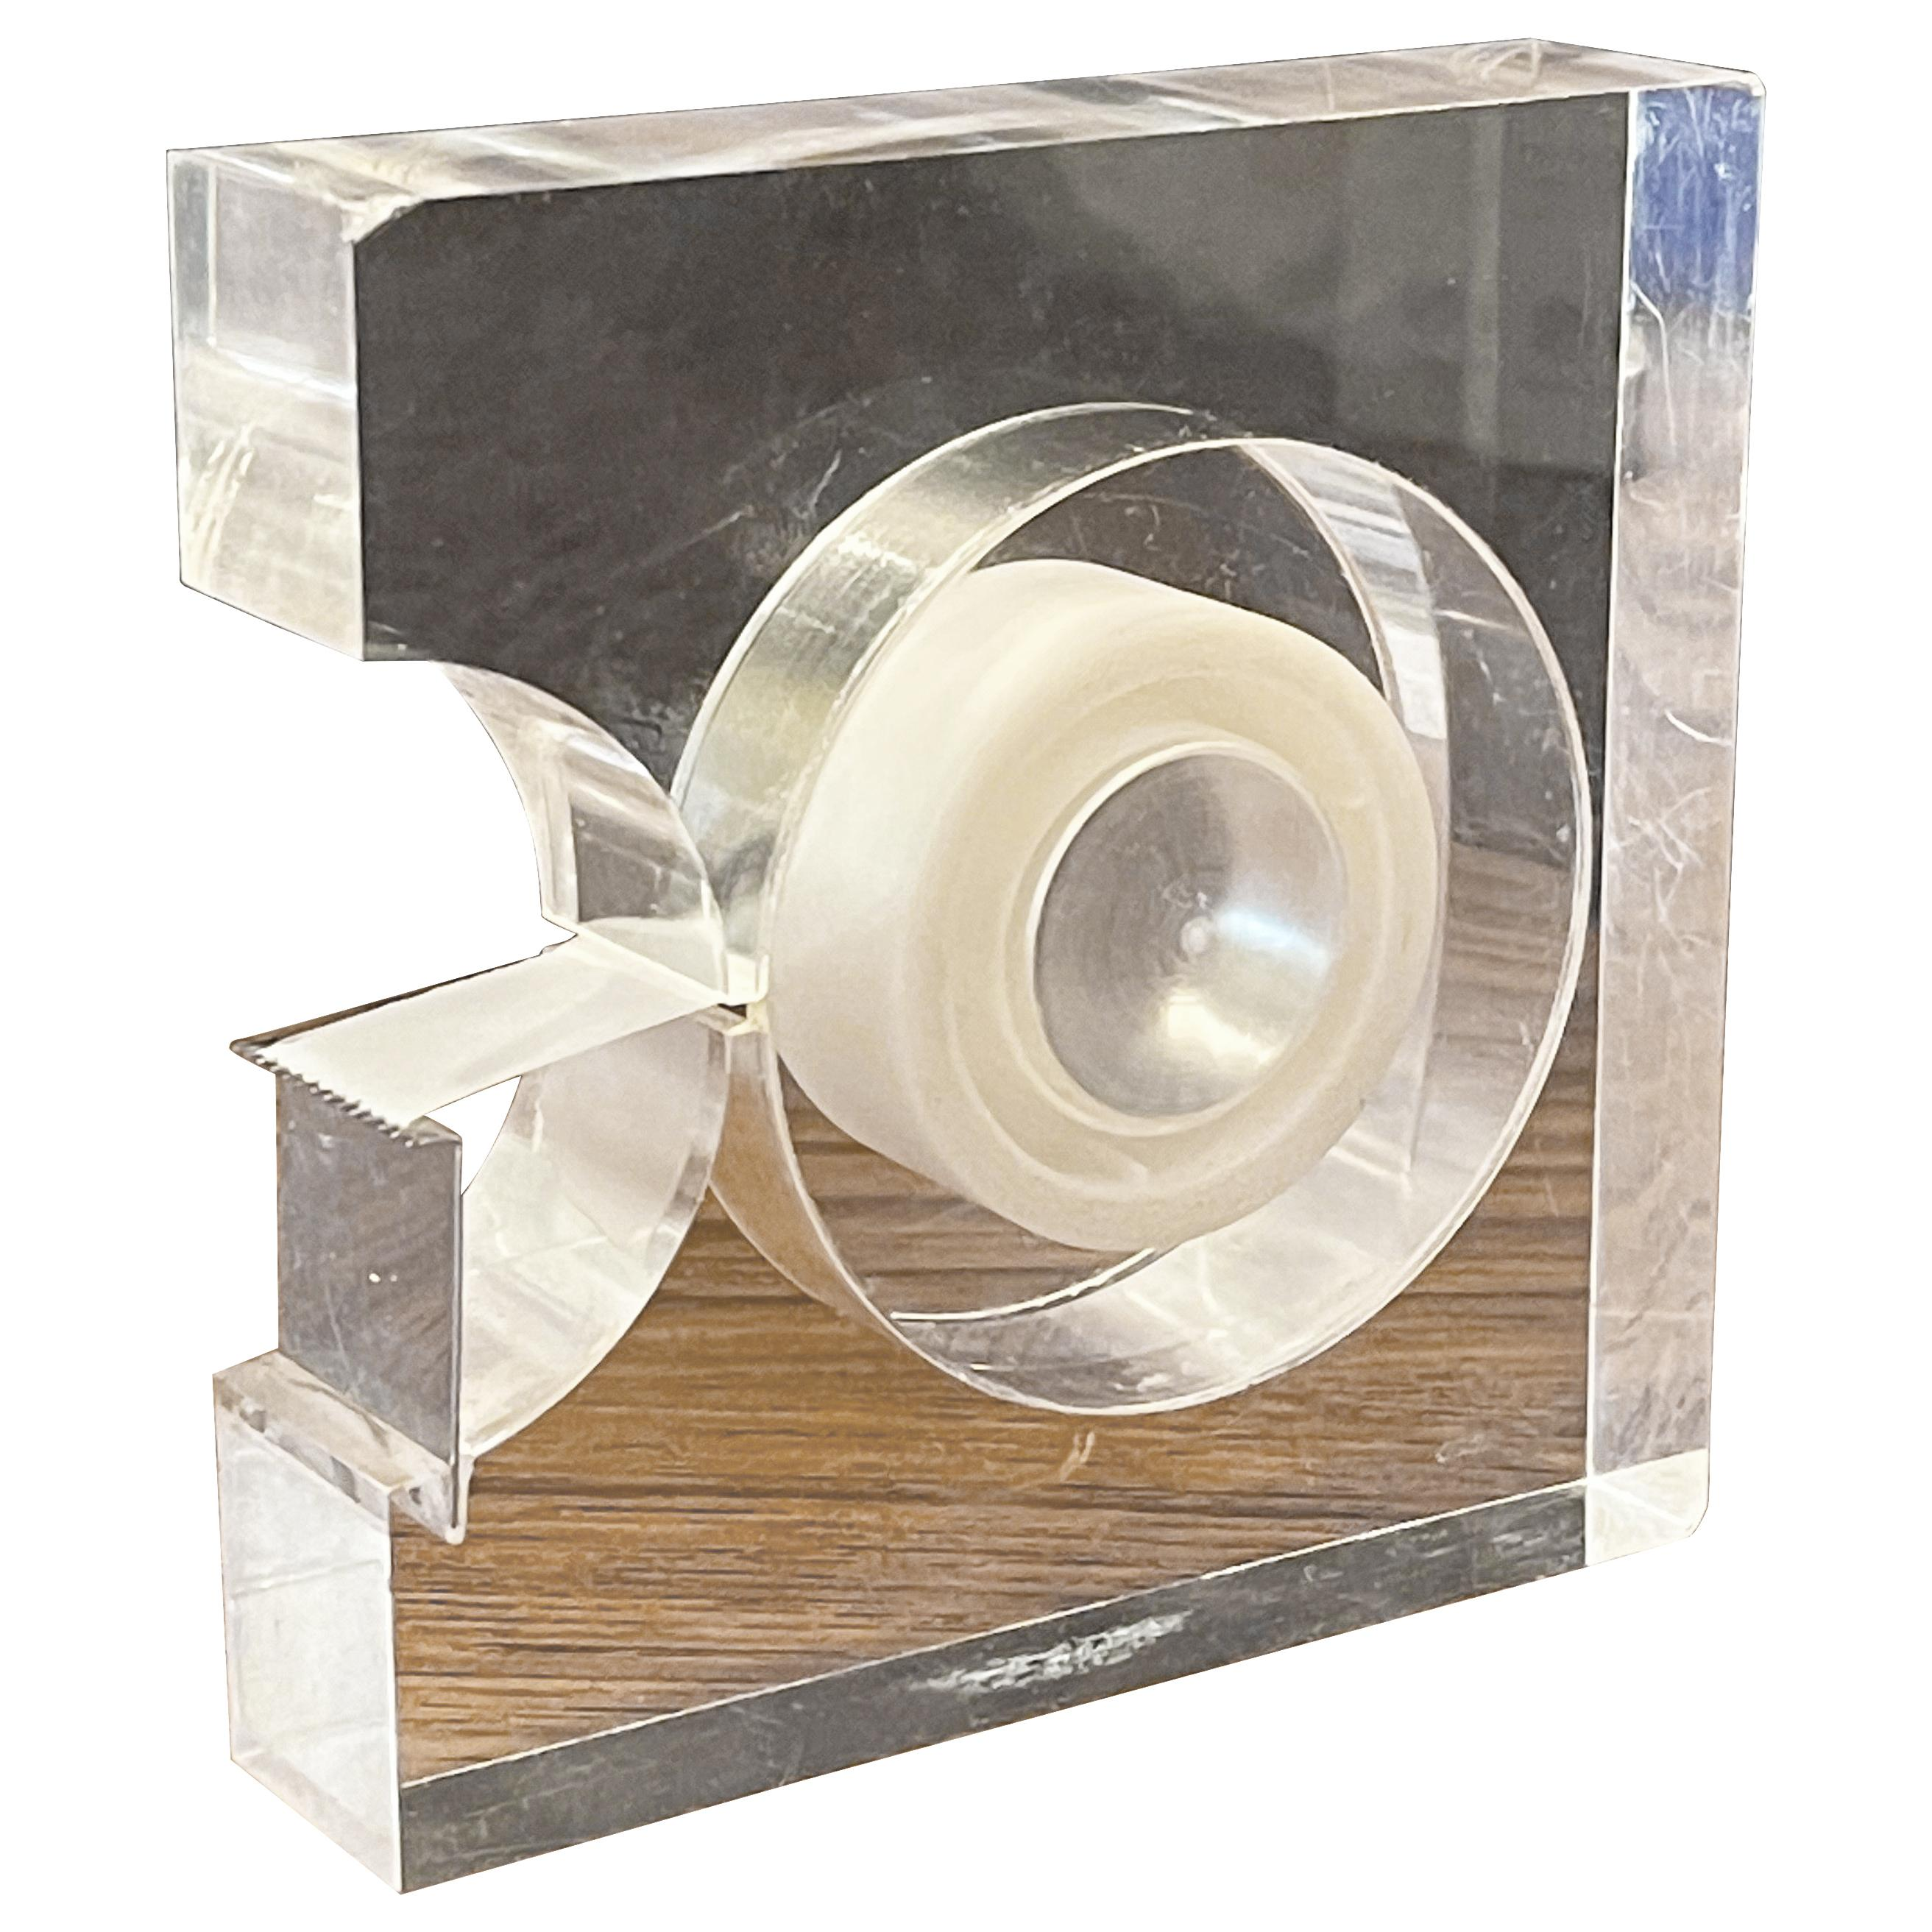 Modern Lucite Tape Dispenser by Two's Company, Design Study Collection MoMA